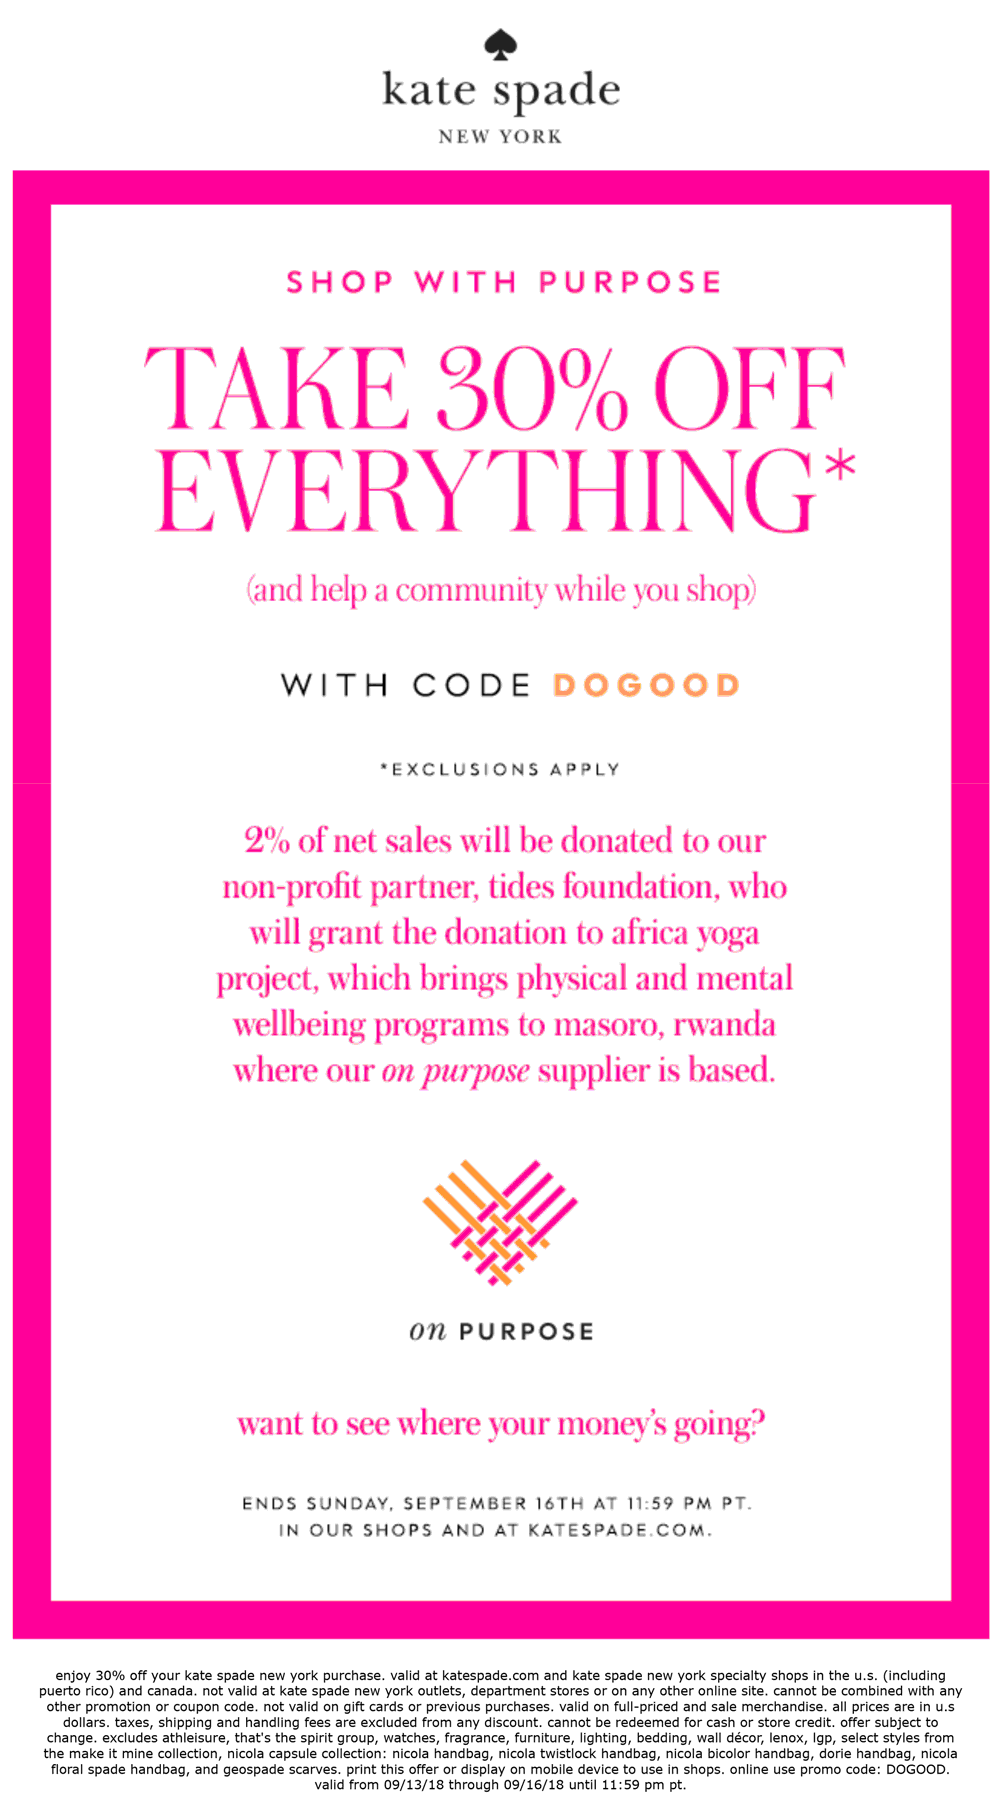 Kate Spade Coupon May 2019 30% off everything at Kate Spade, or online via promo code DOGOOD